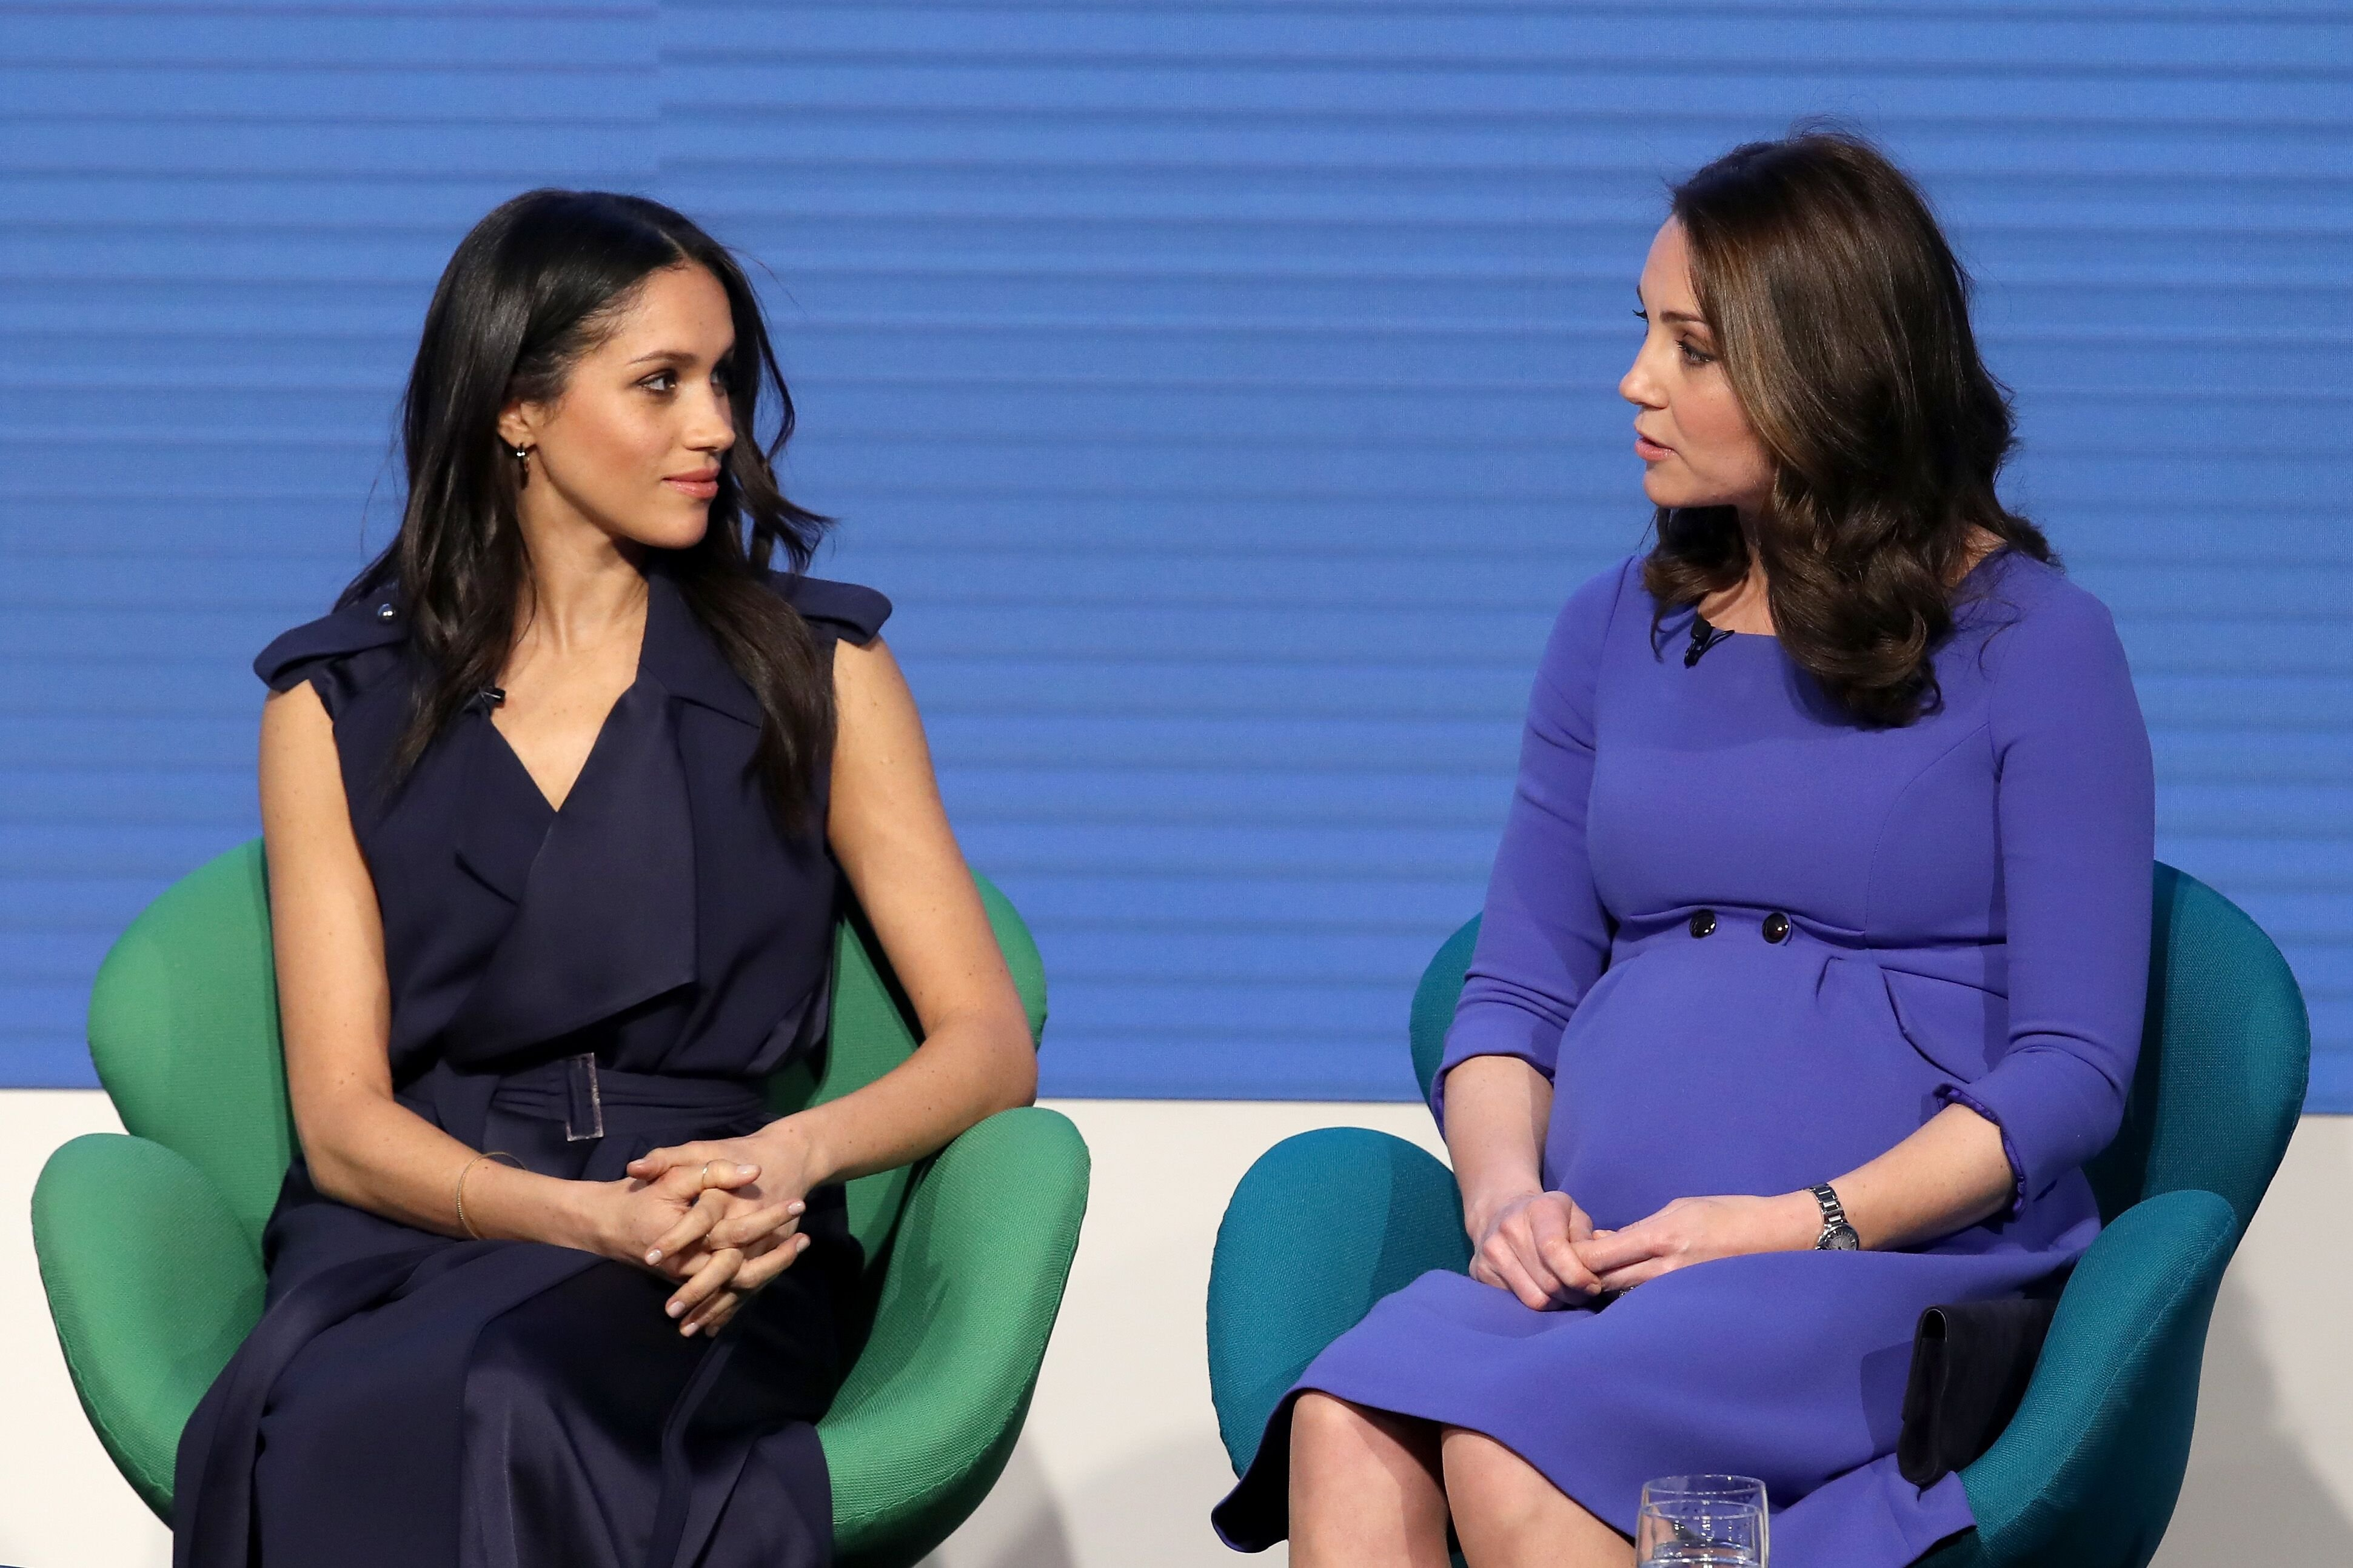 Meghan Markle and Kate Middleton discussing the Royal Foundation. Image credit: Getty/Global Images Ukraine